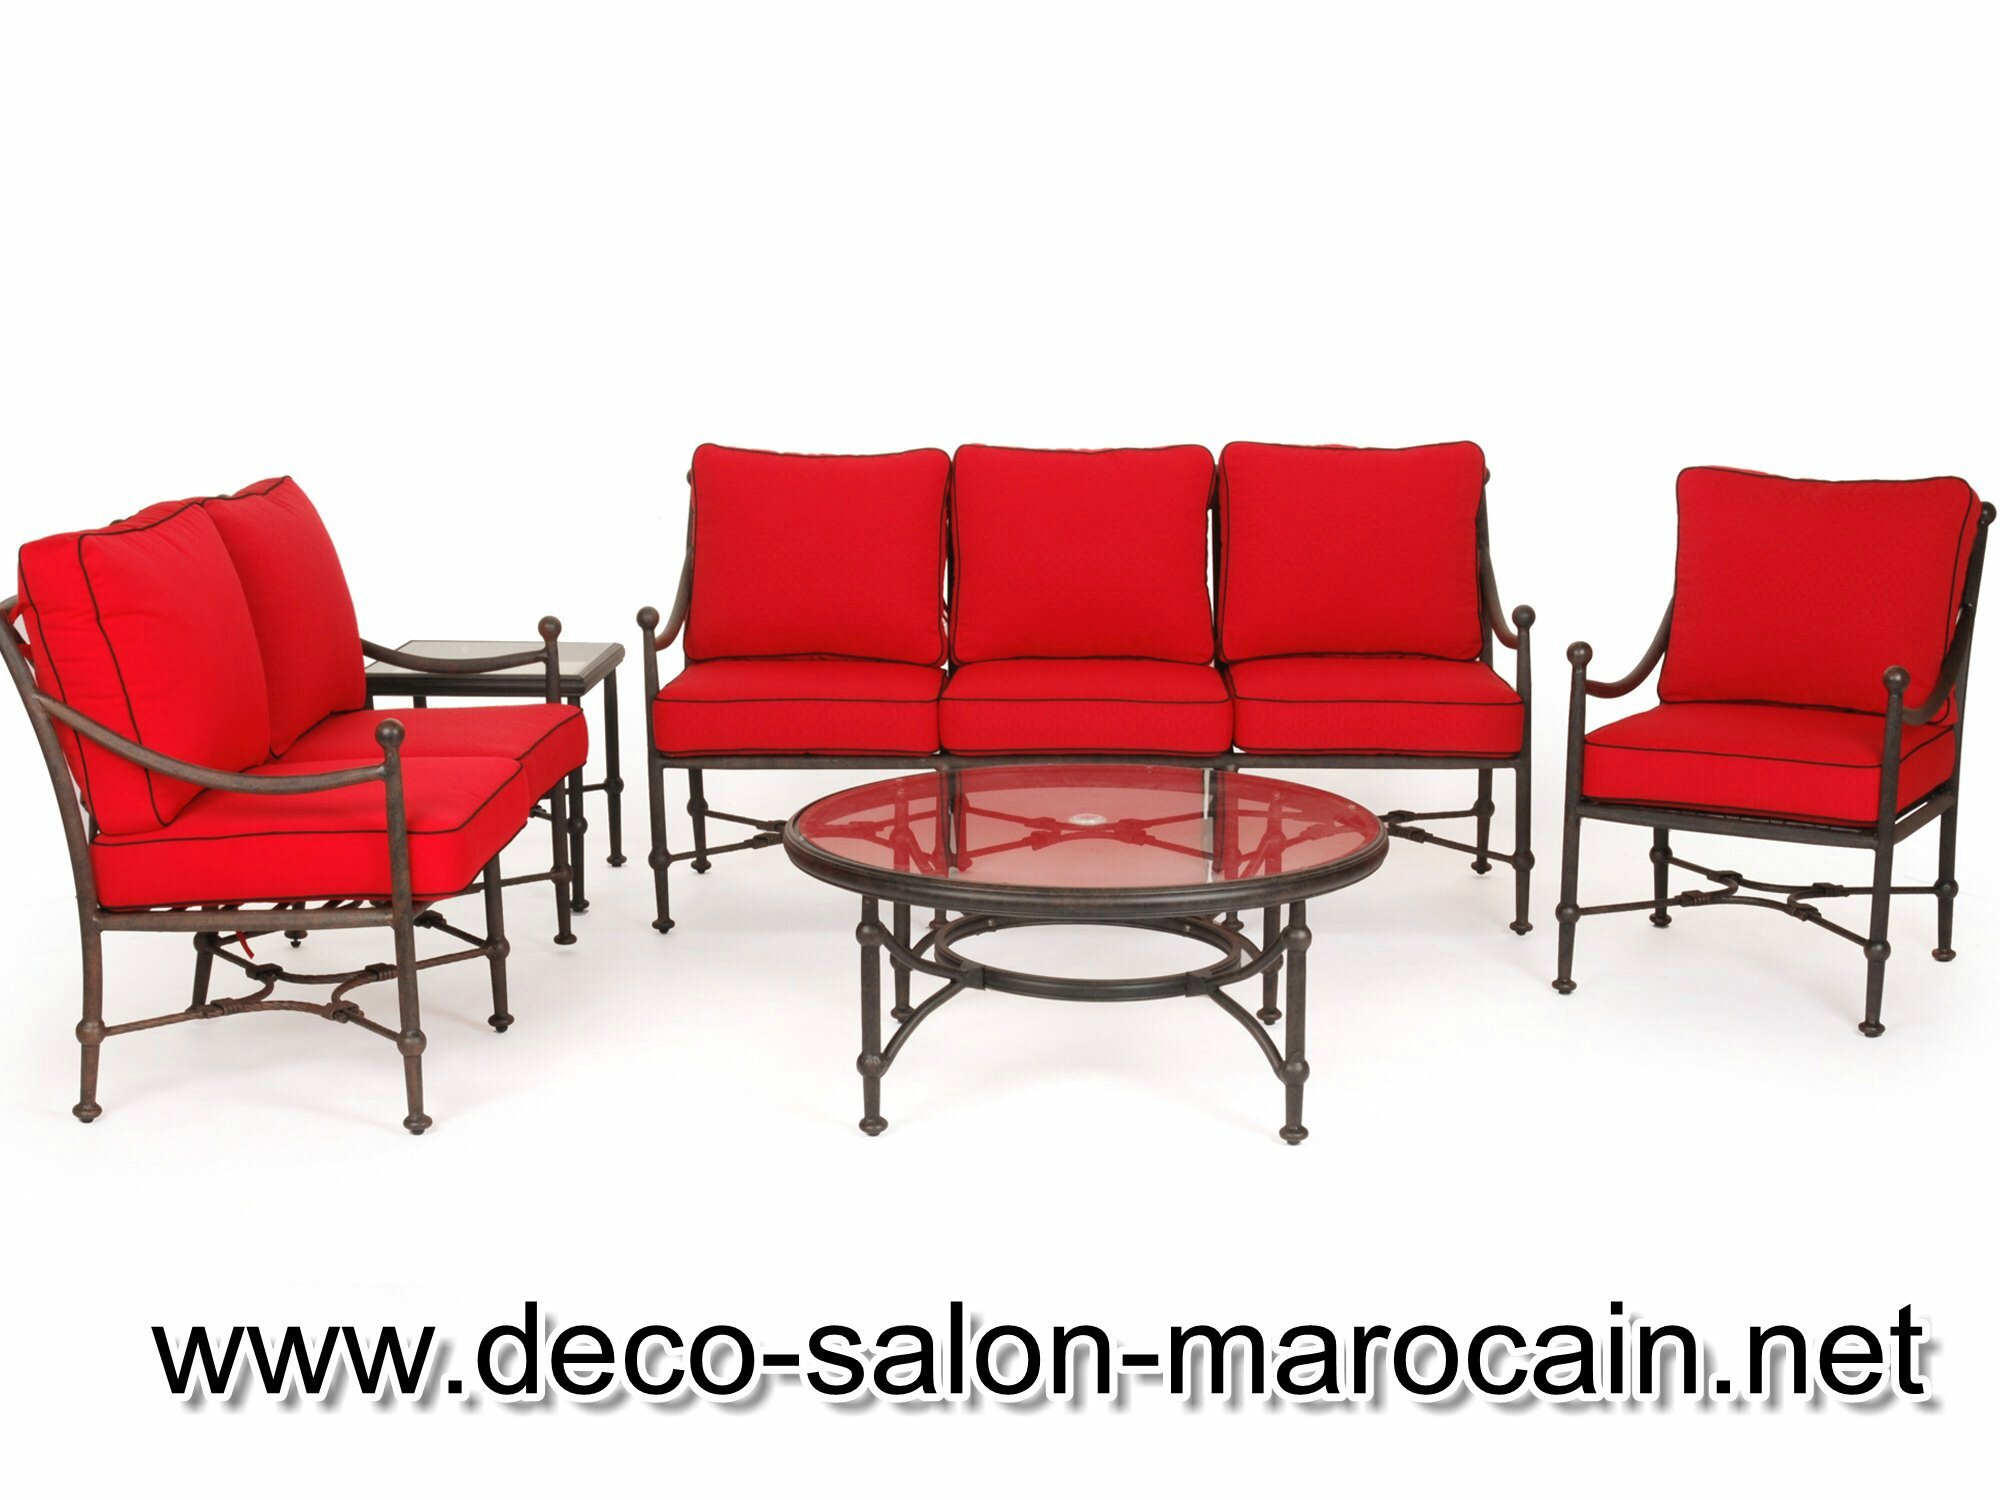 salon marocain fer forg style moderne salon maroc d co. Black Bedroom Furniture Sets. Home Design Ideas